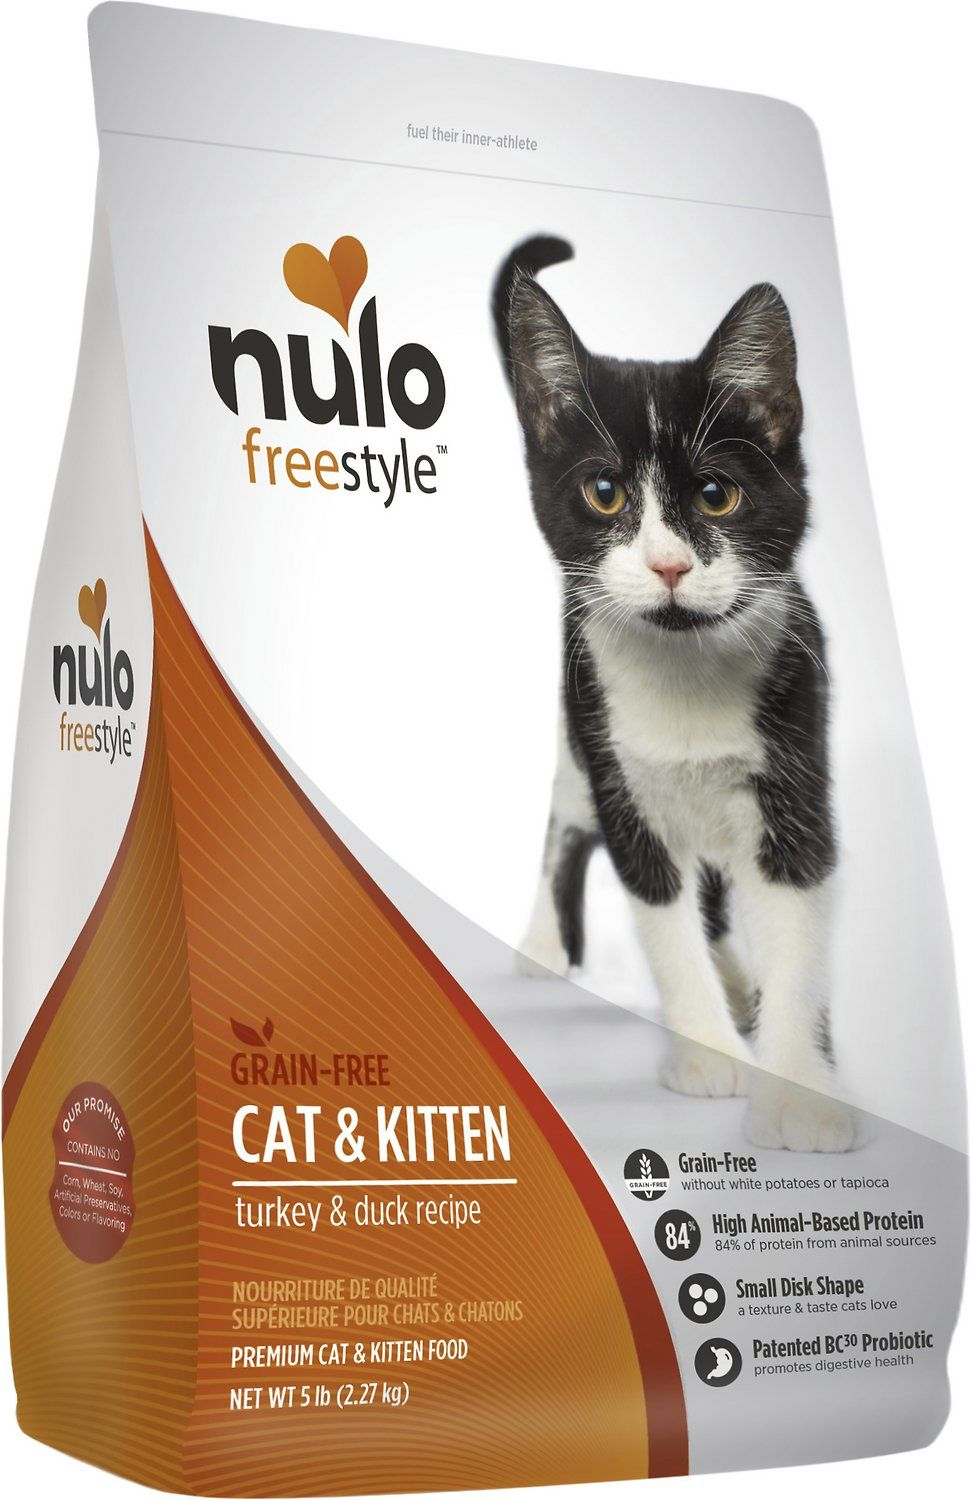 Nulo FreeStyle knows that our feline friends require